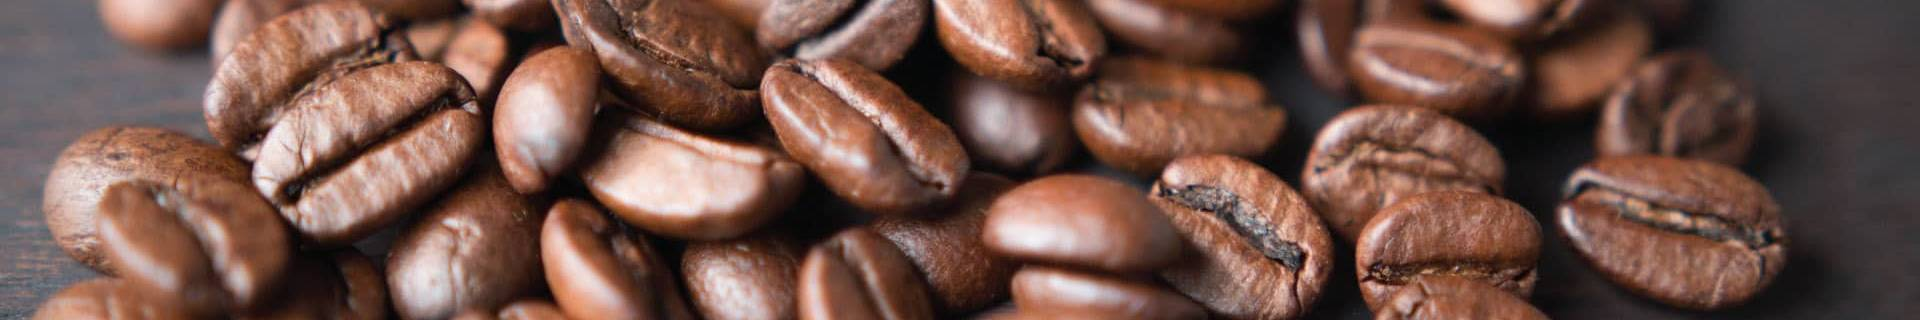 Organic & Fairtrade Coffee - ECOLECTIA